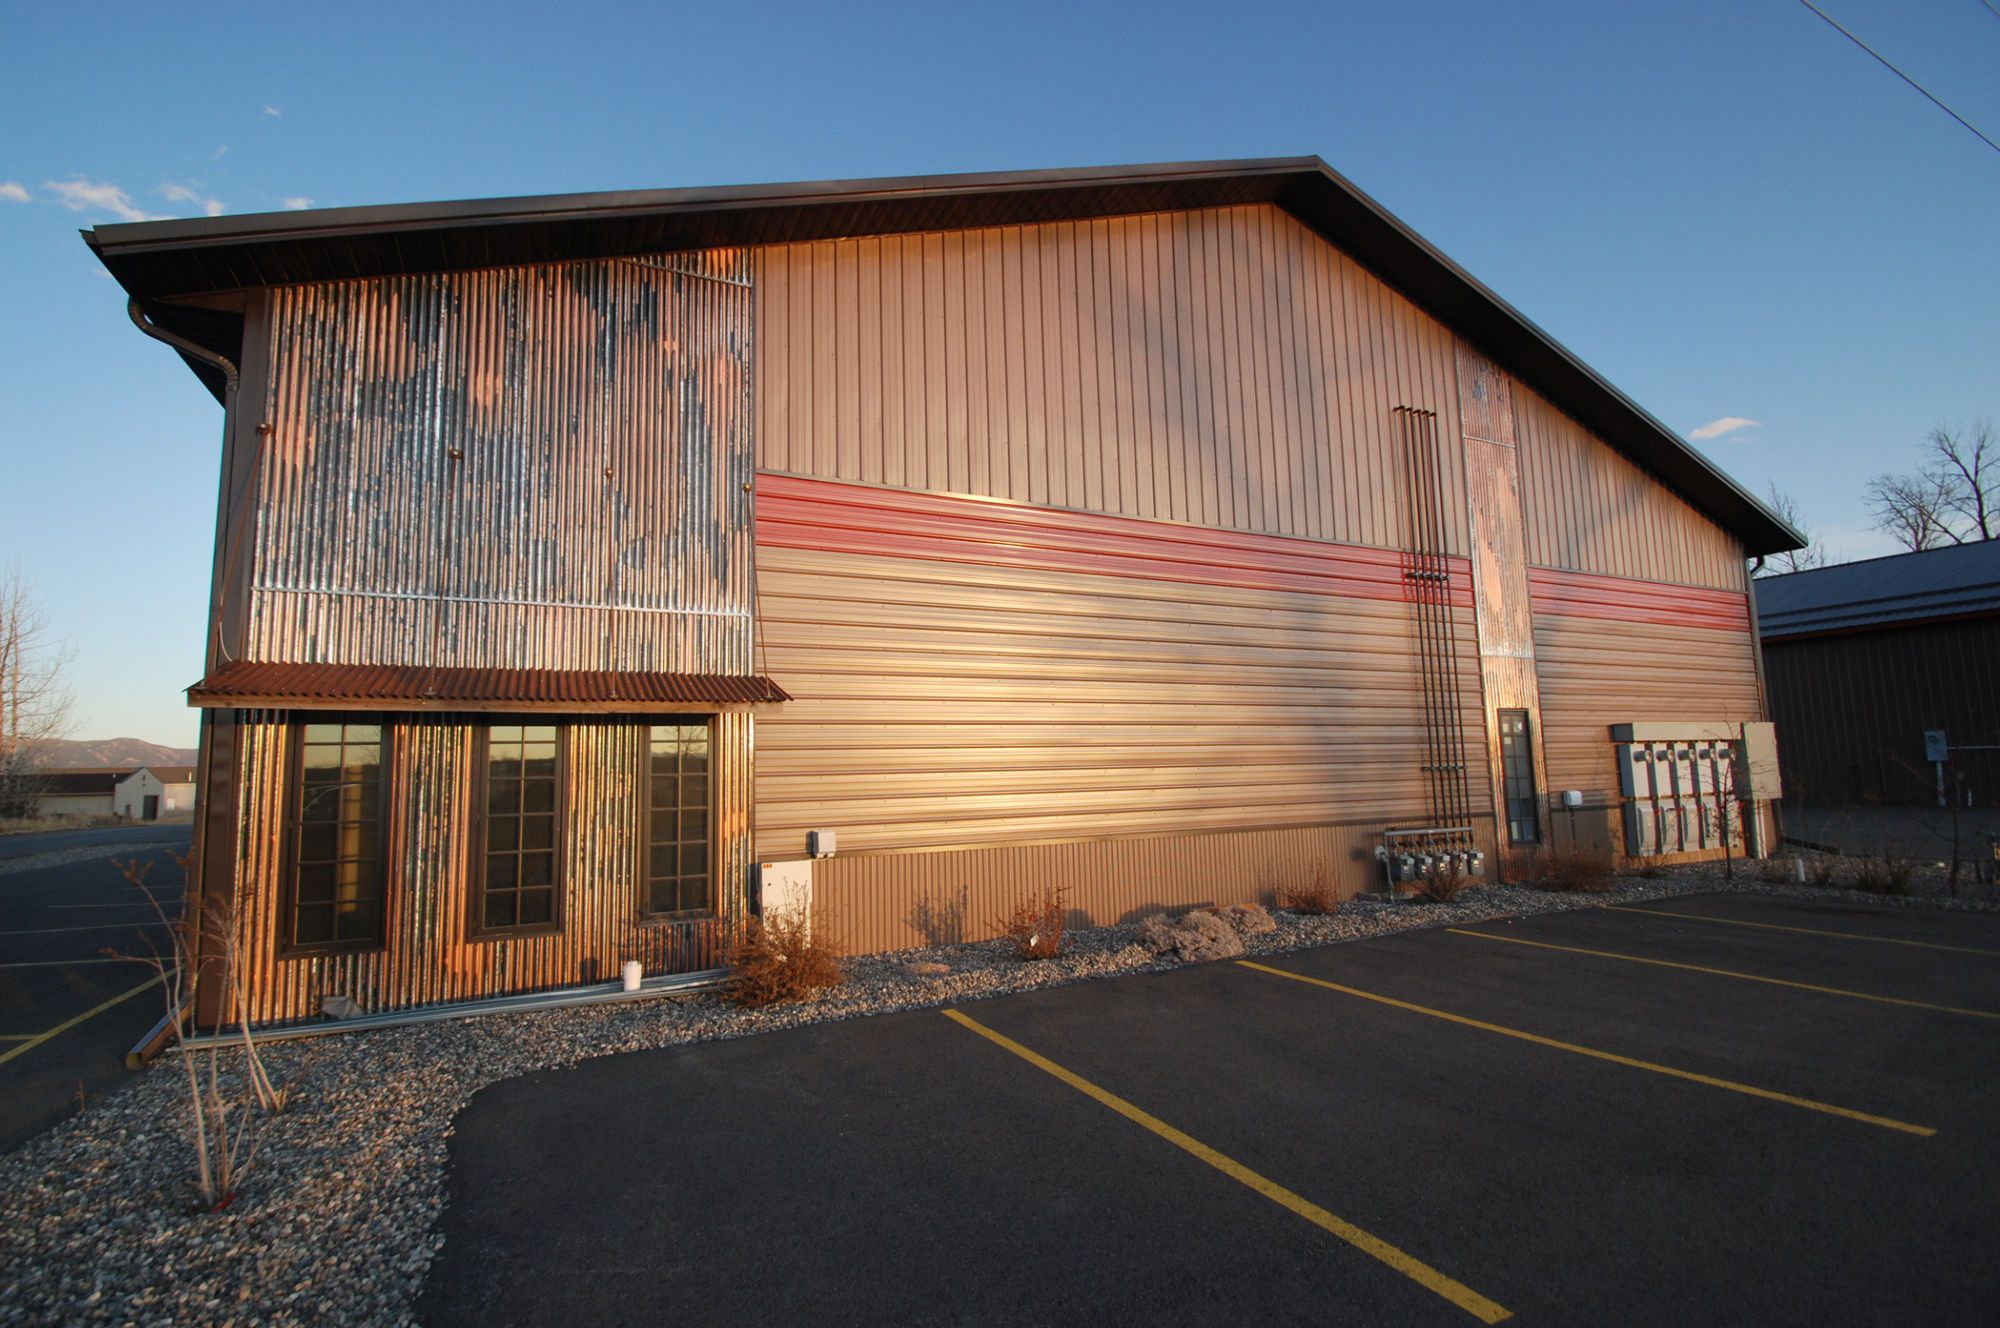 952 2 12 Corrugated Accent 2000x1328 Jpg 2000 1328 Metal Roof Corrugated Metal Siding Metal Buildings